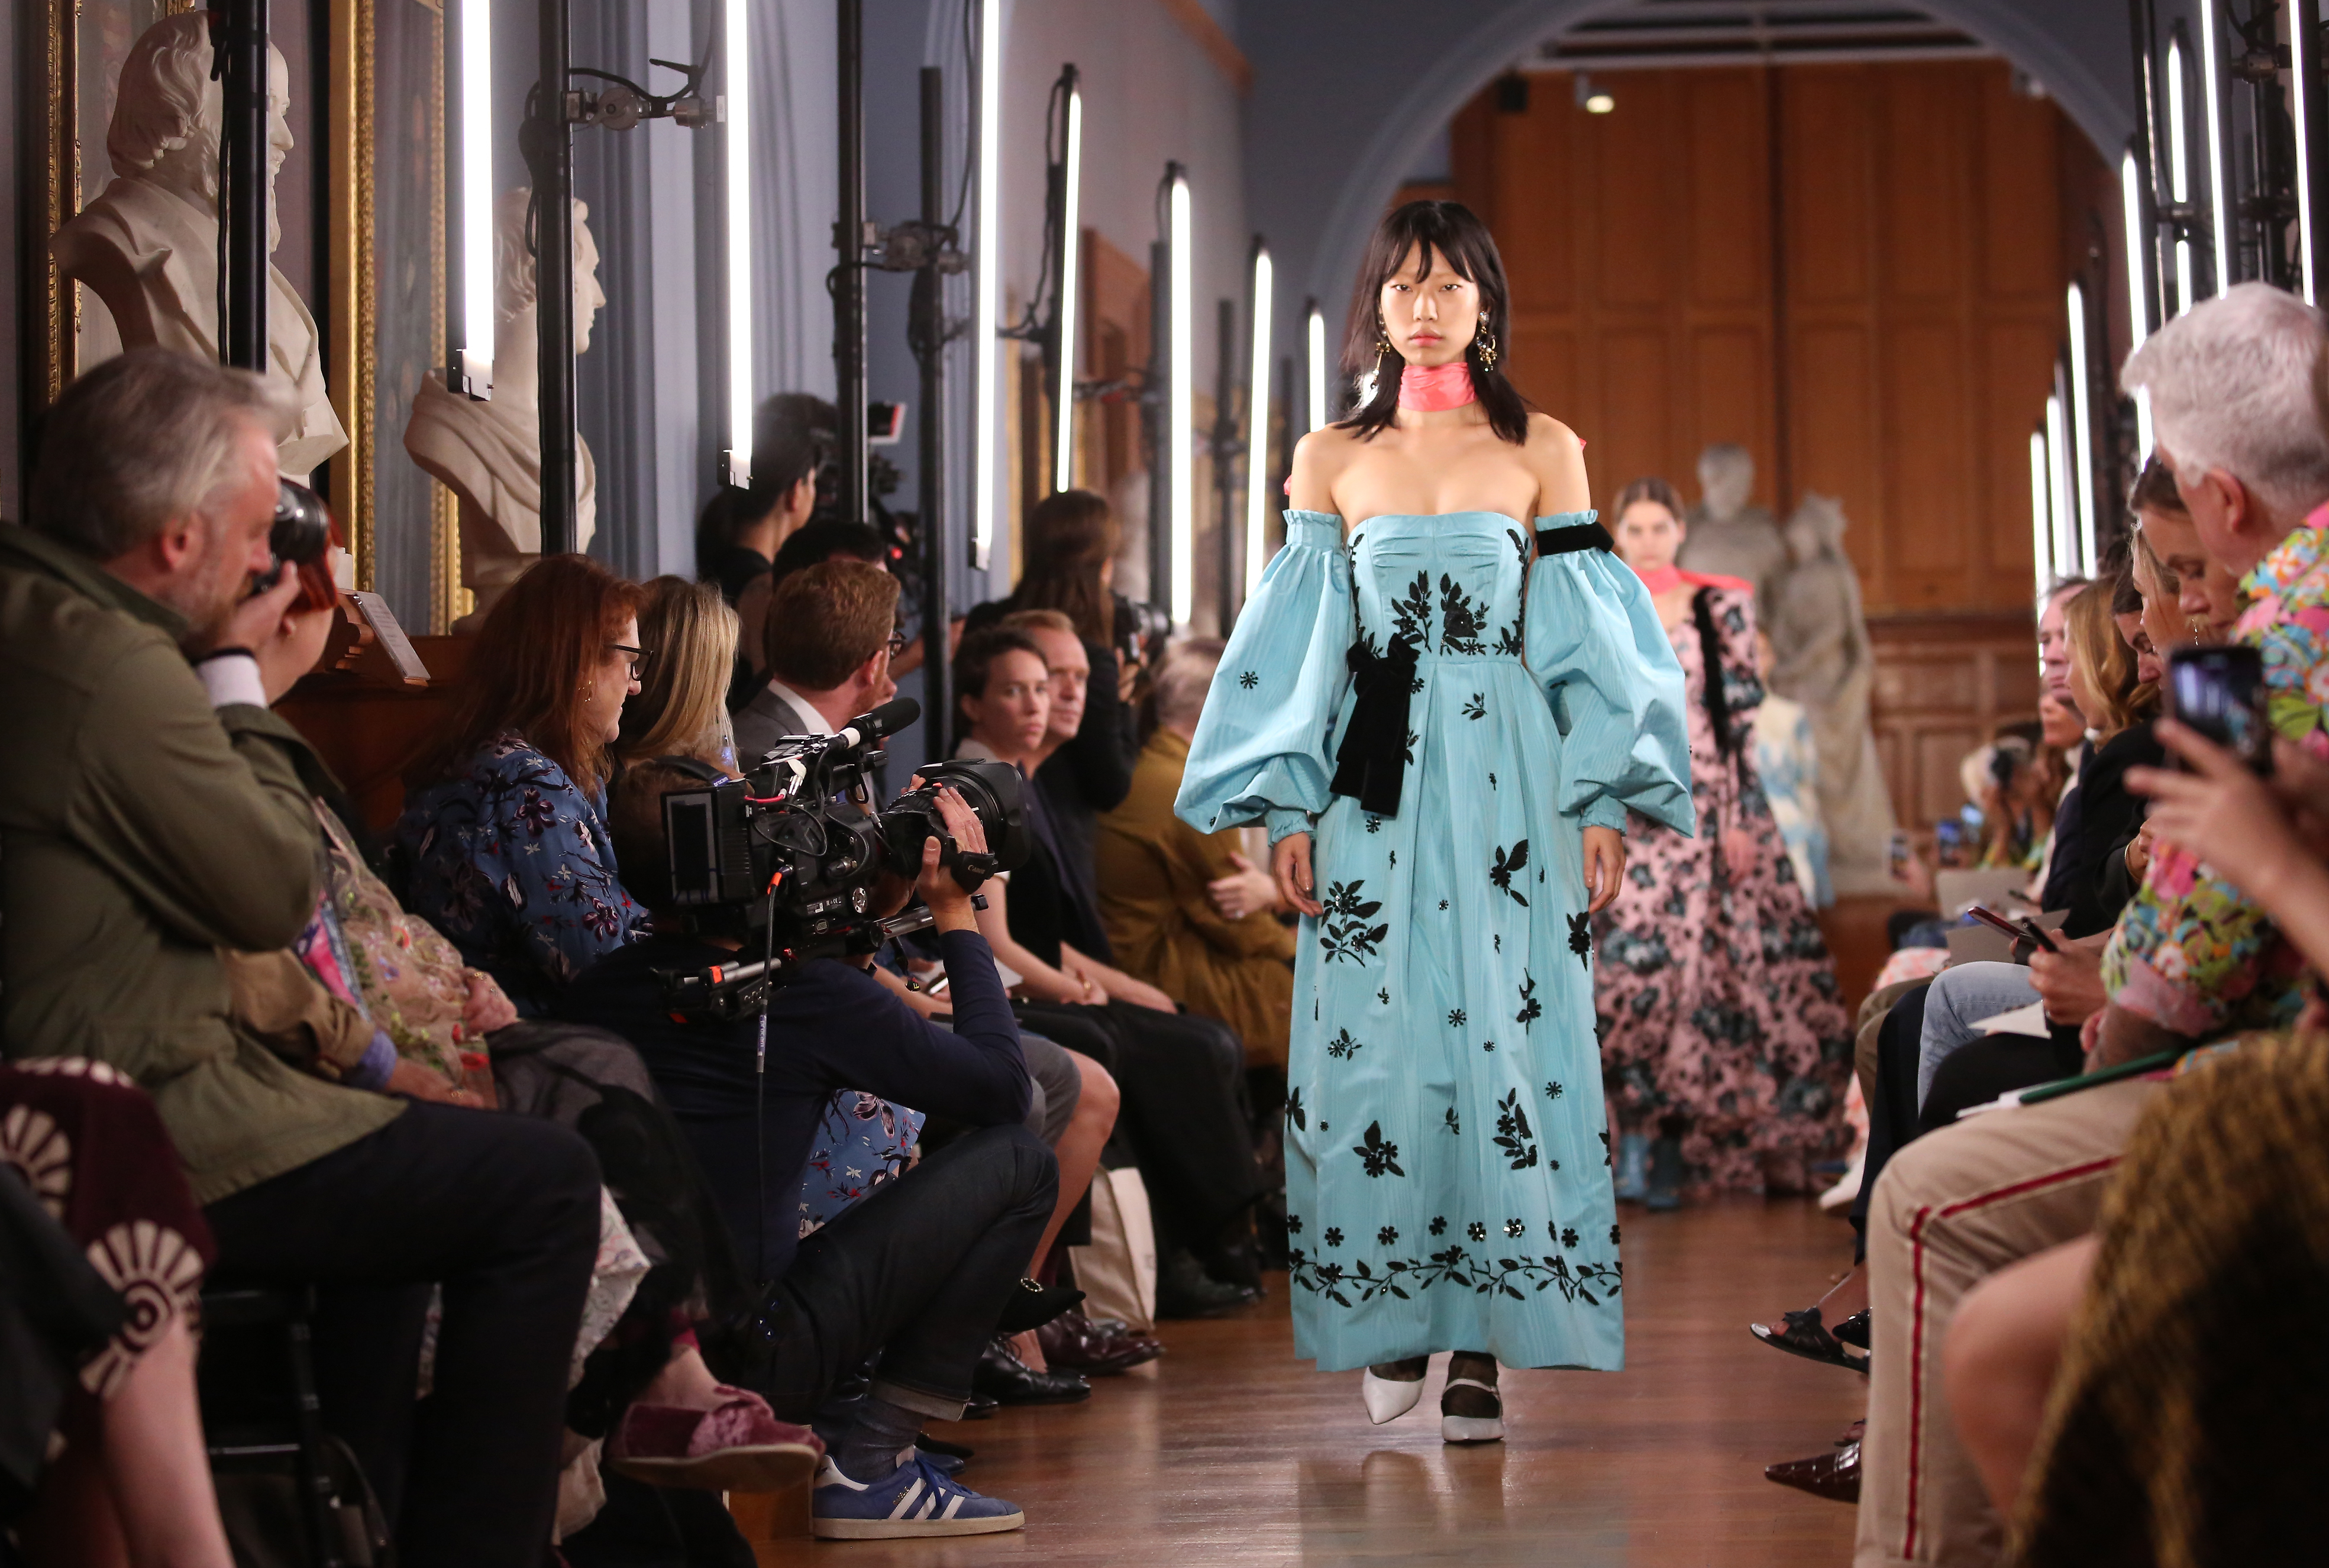 Models on the catwalk during the Erdem London Fashion Week September 2018 show at The National Portrait Gallery in London